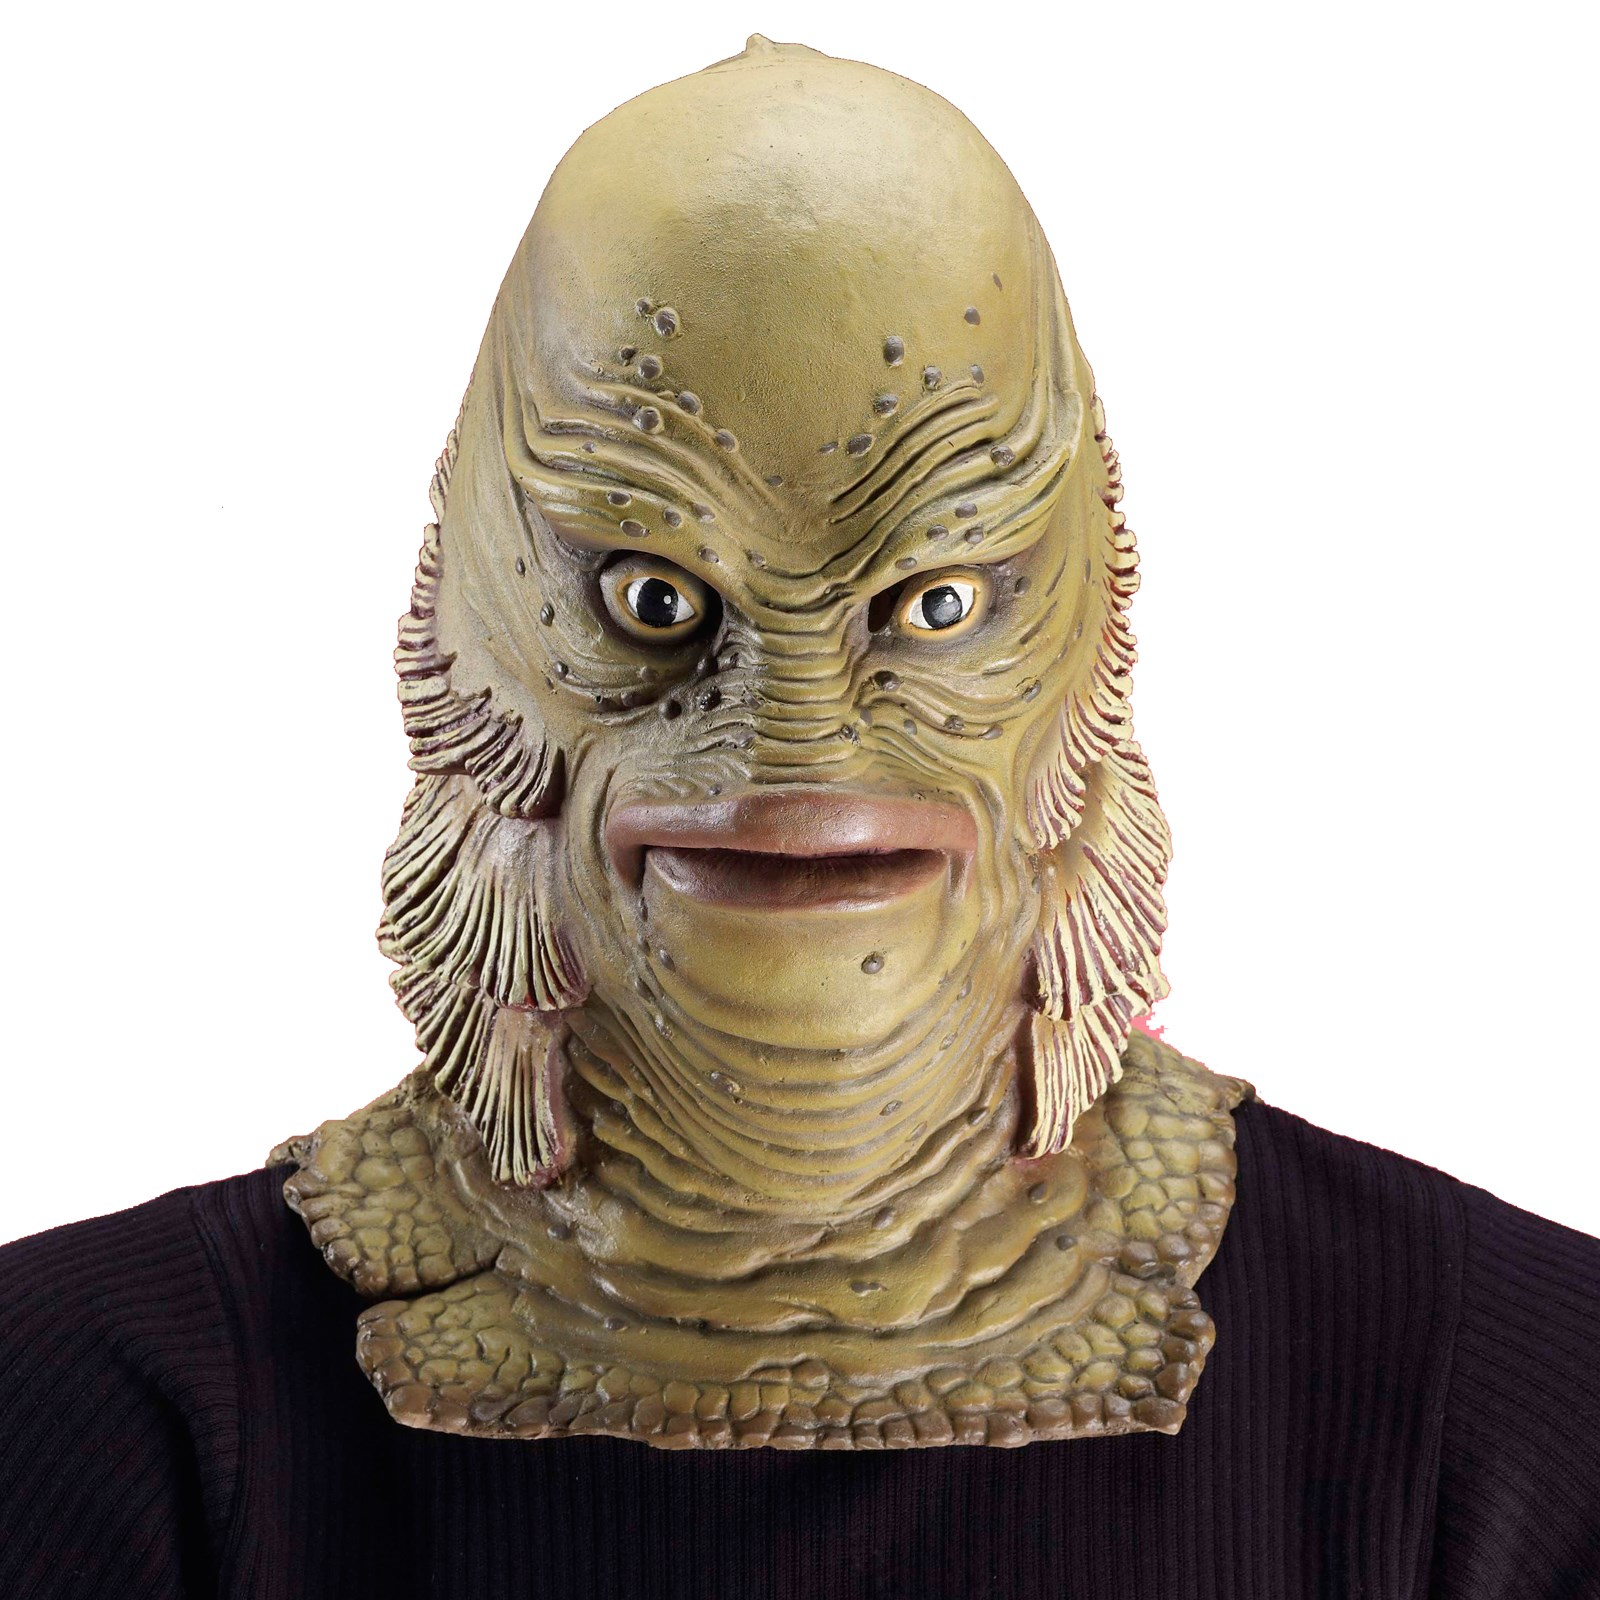 Universal Monster Collectors Edition Creature from the Black Lagoon Adult Mask